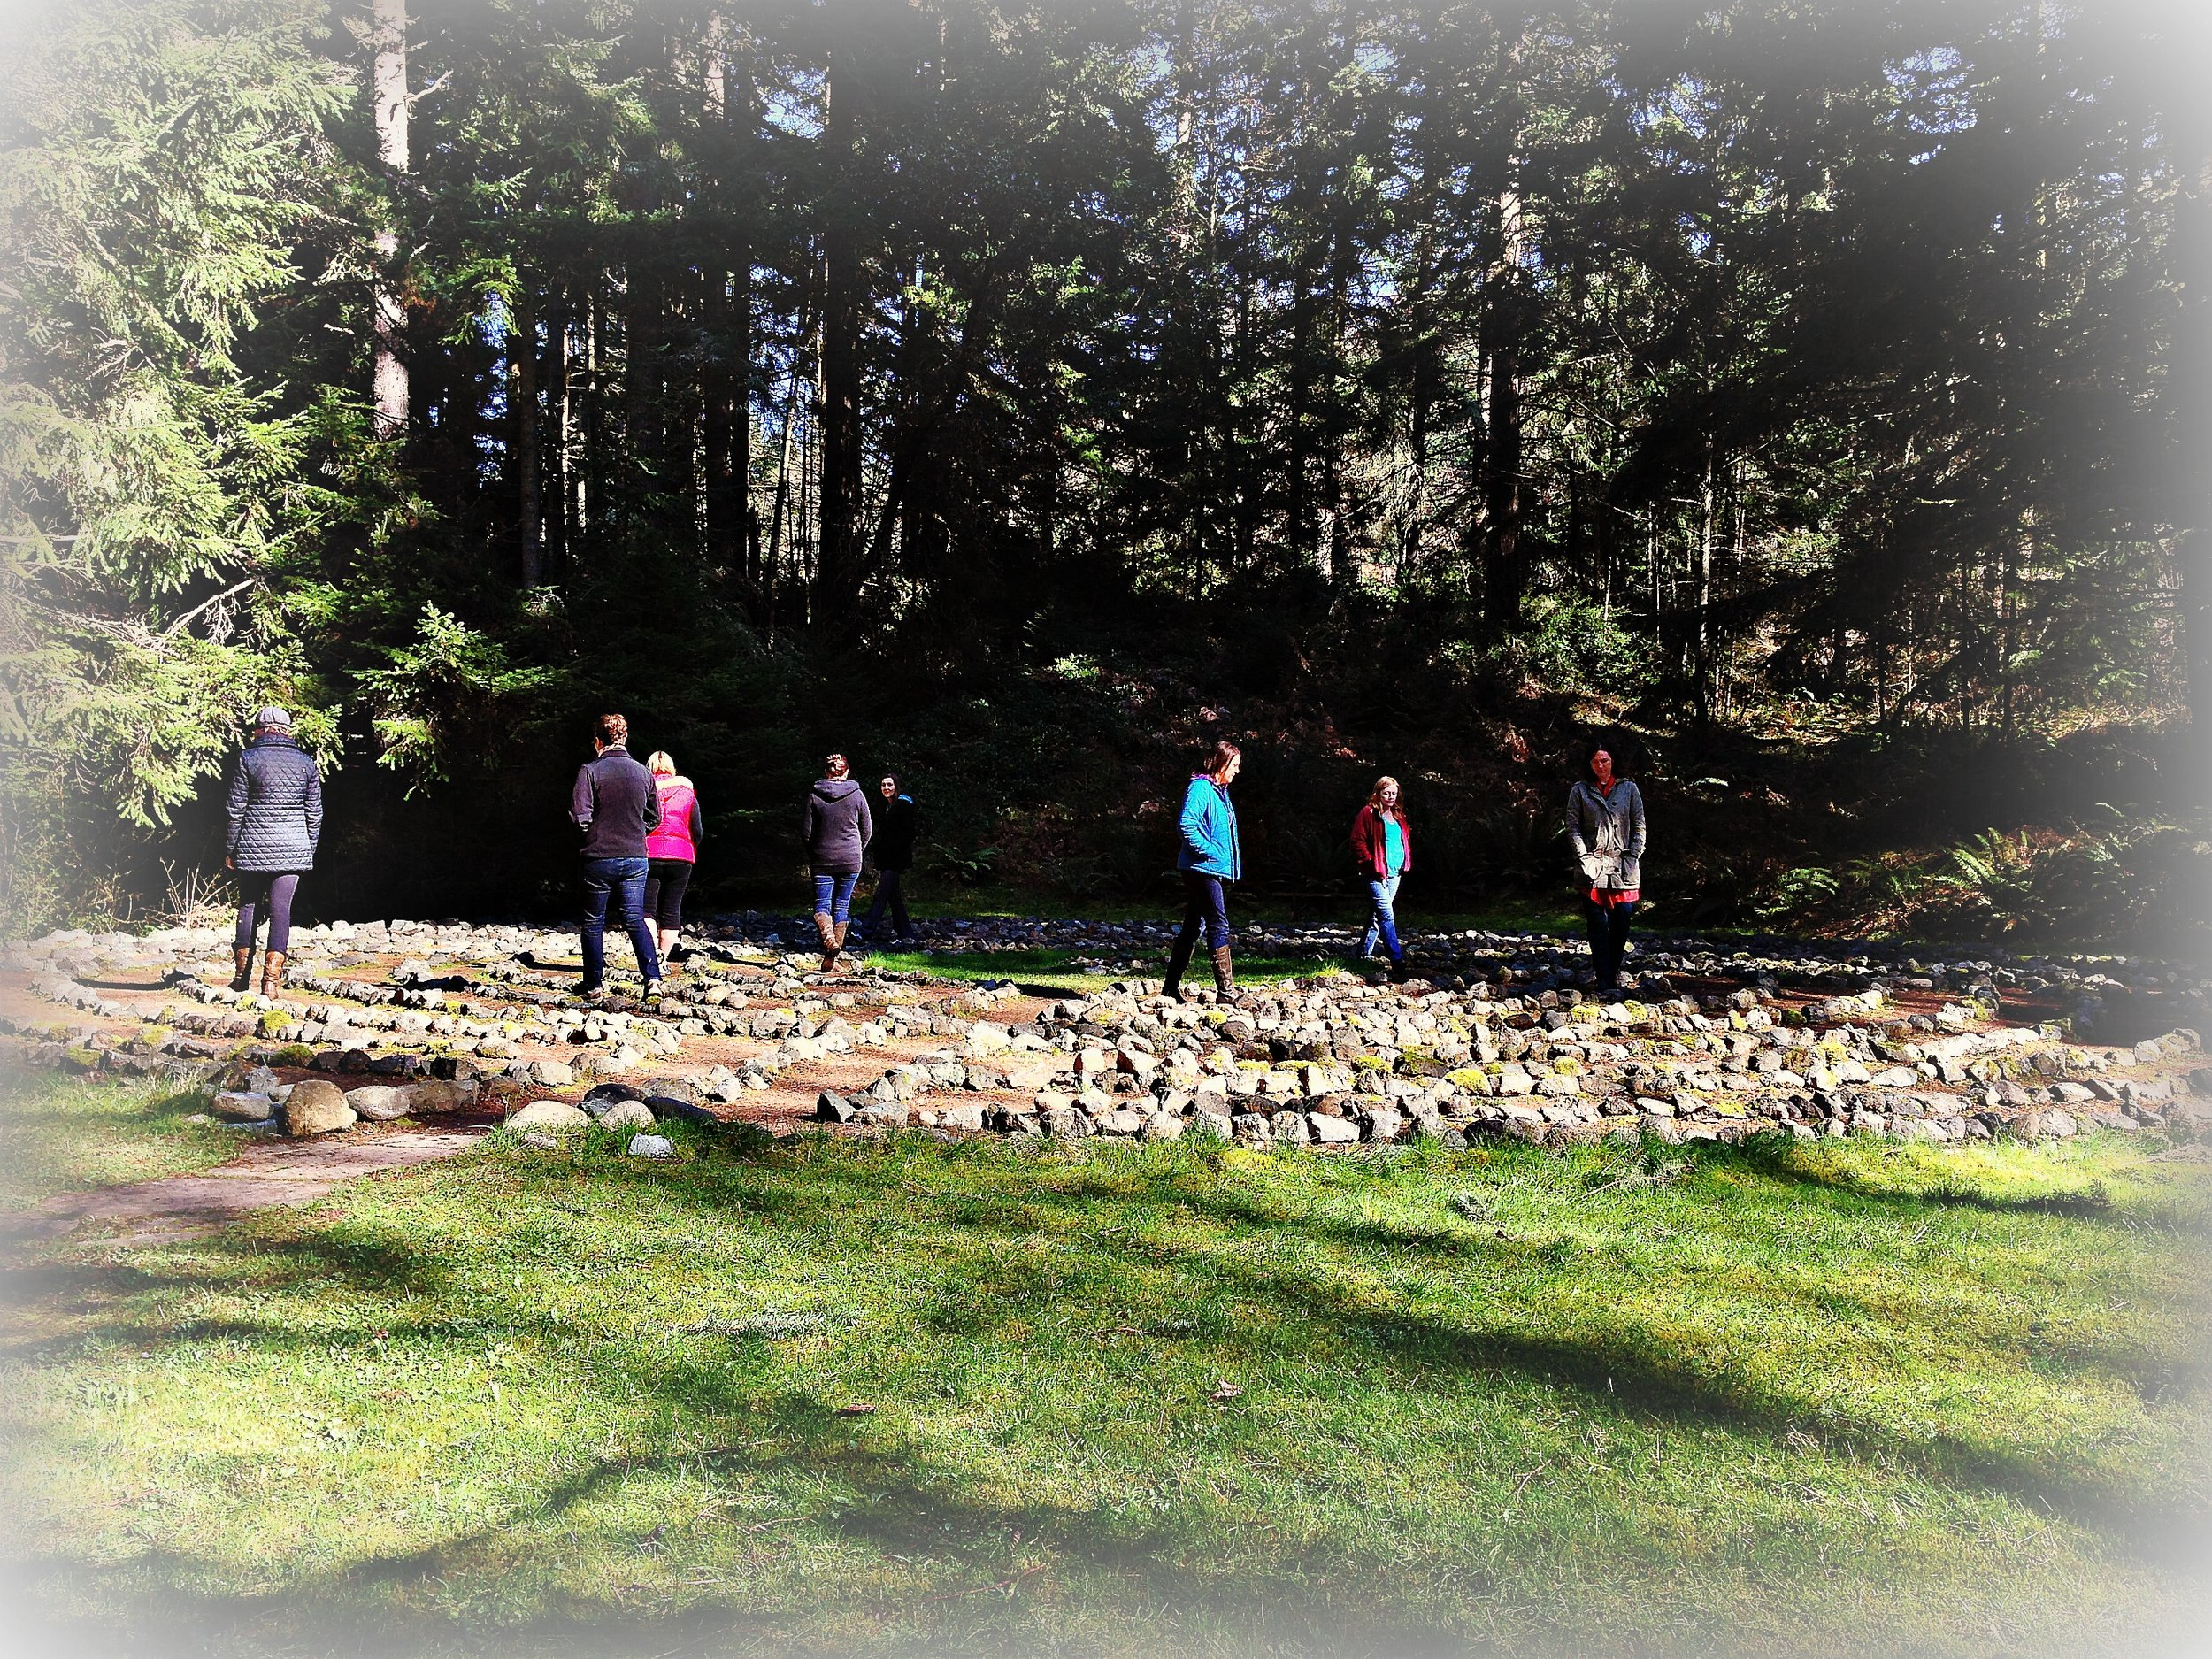 A group of women walking the labyrinth at The Whidbey Institute on Whidbey Island, WA